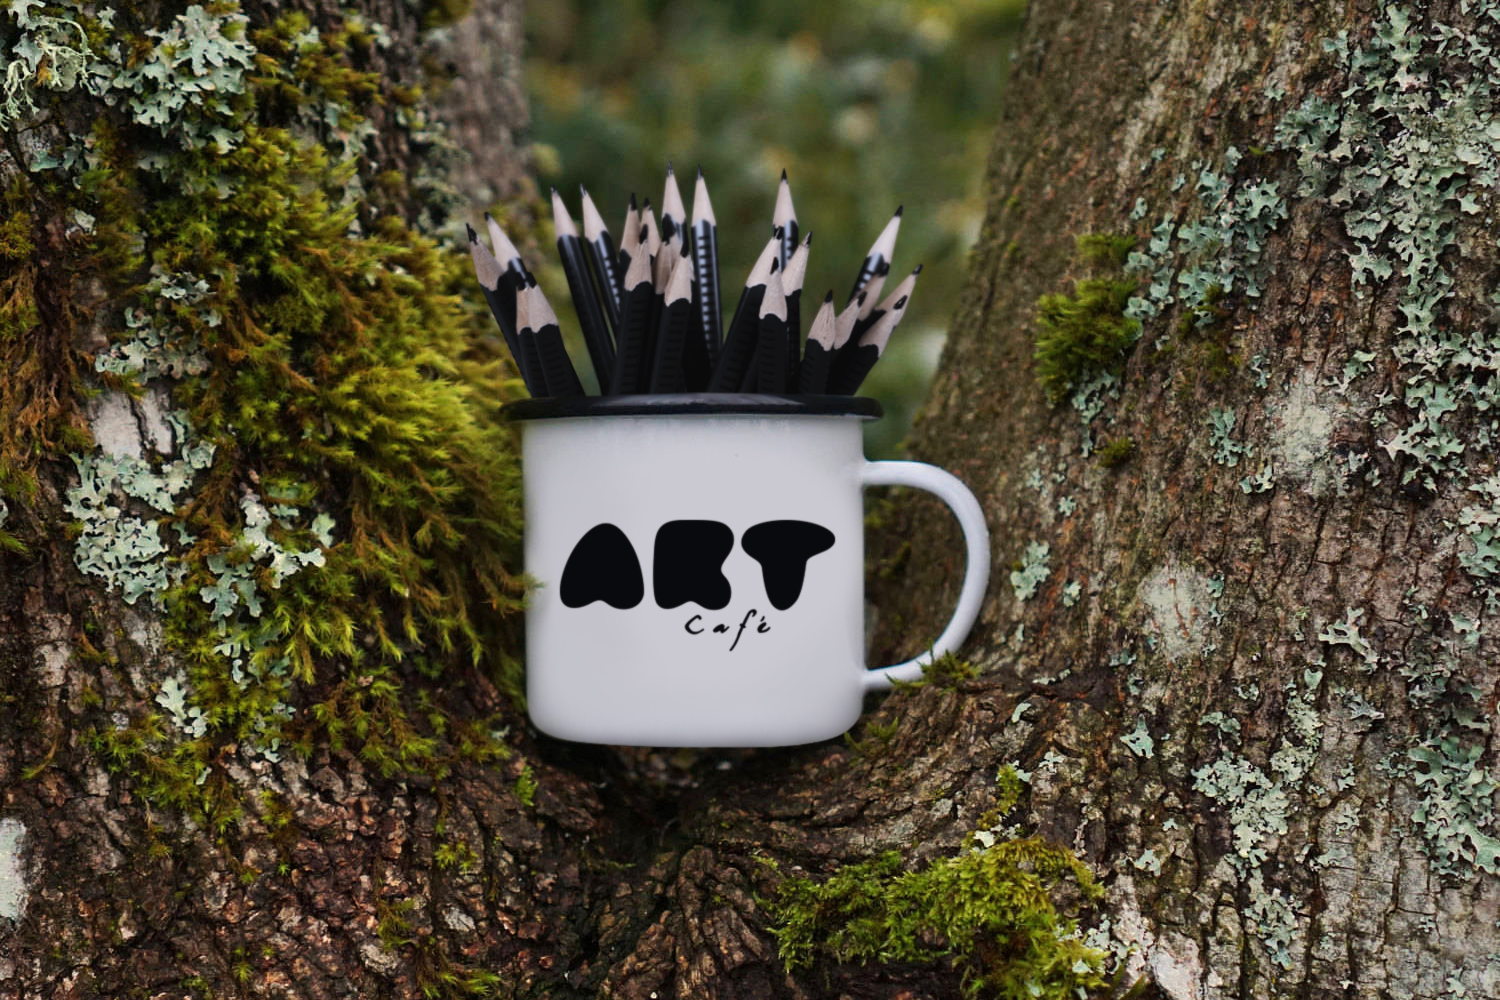 Art-cafe-home-gallery-cup.jpg